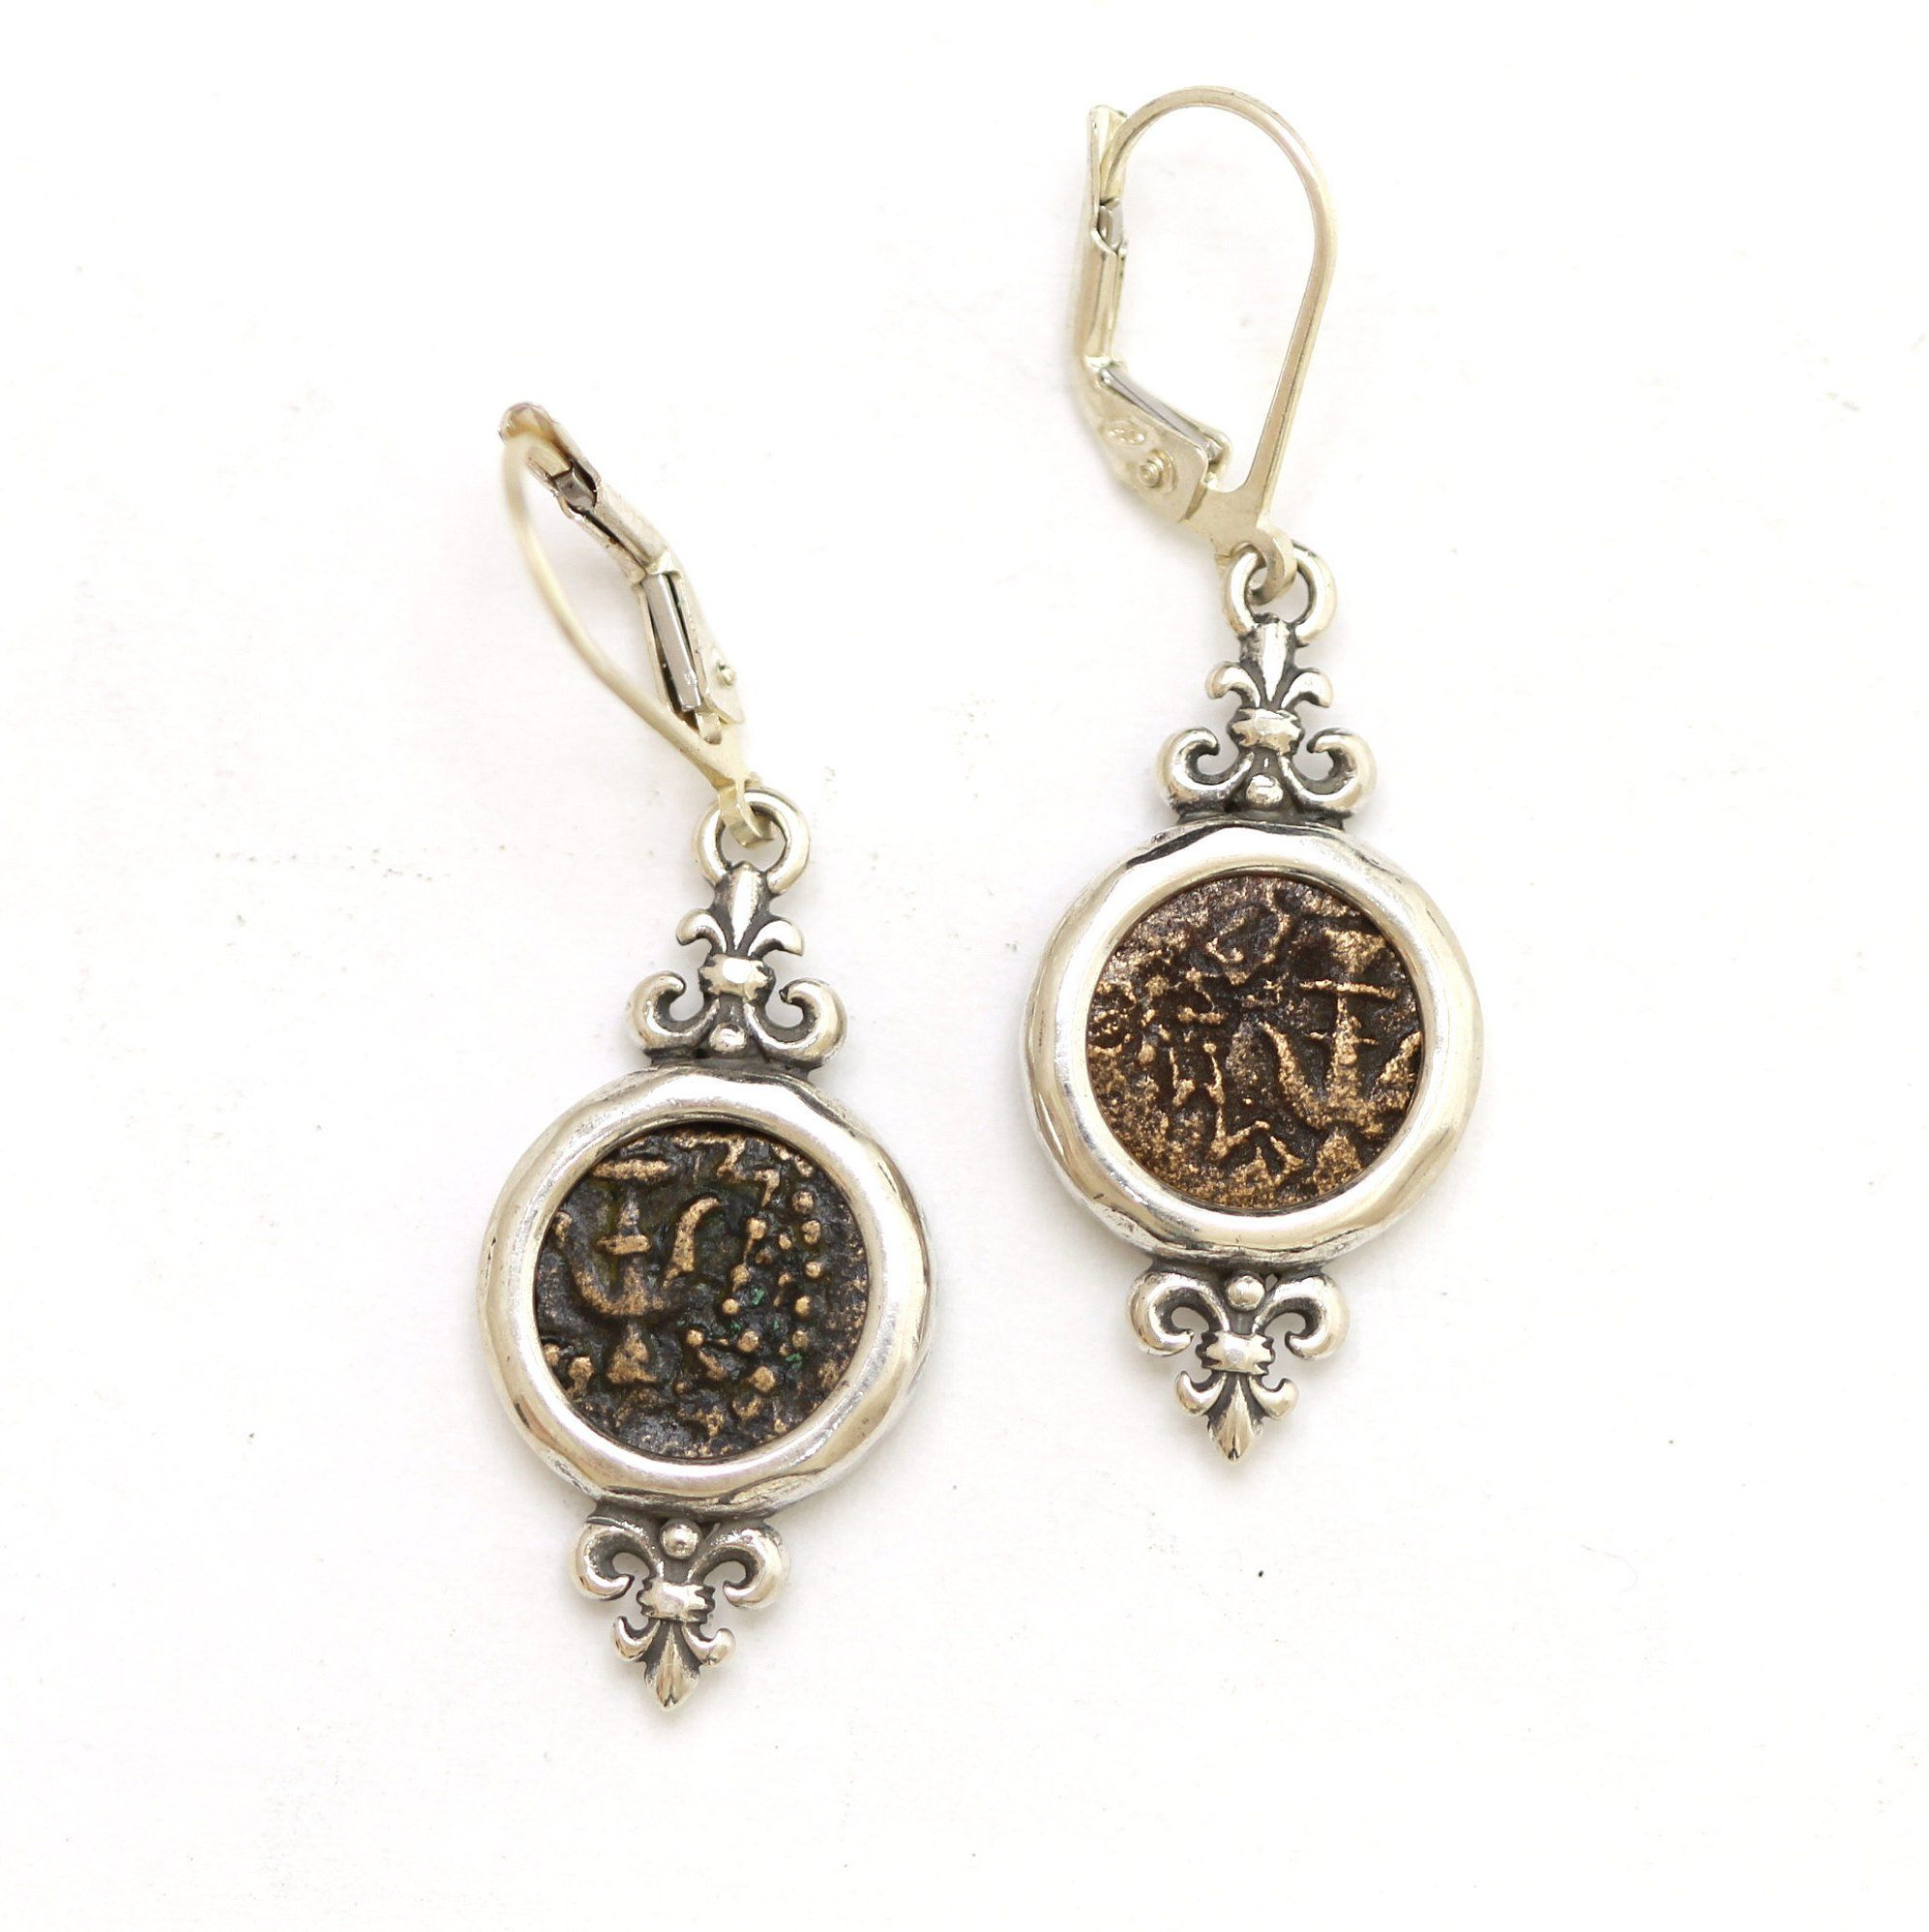 Silver Earrings, Widows Mite Coins, Anchors, 6944 - Erez Ancient Coin Jewelry, ancient coin jewelry, men jewelry, genuine ancient coins, made in the US